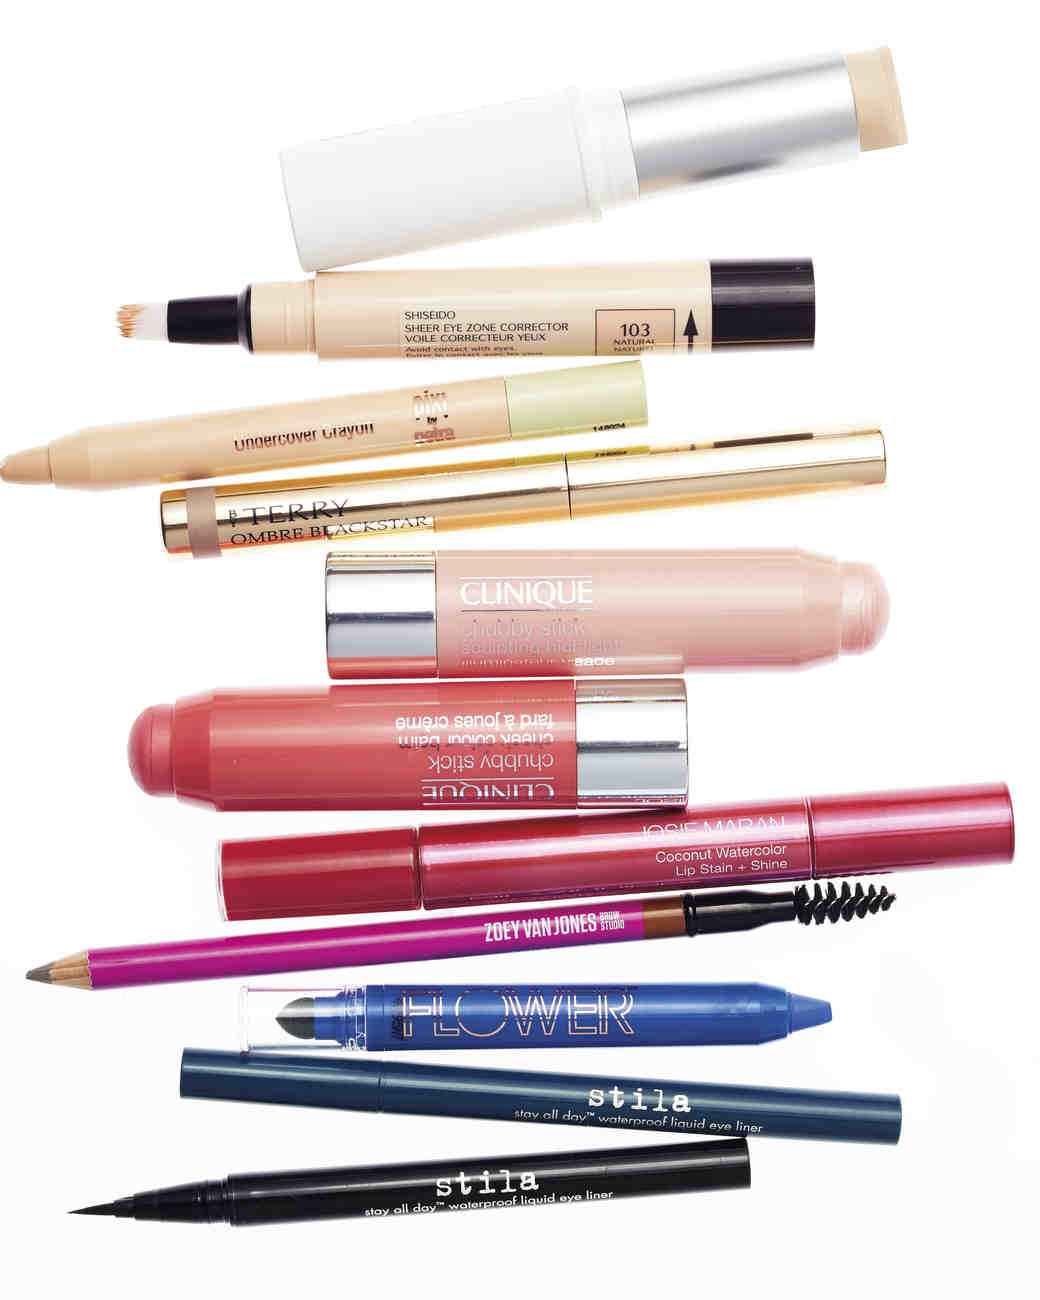 beauty-makeup-pencils-025-d112029.jpg